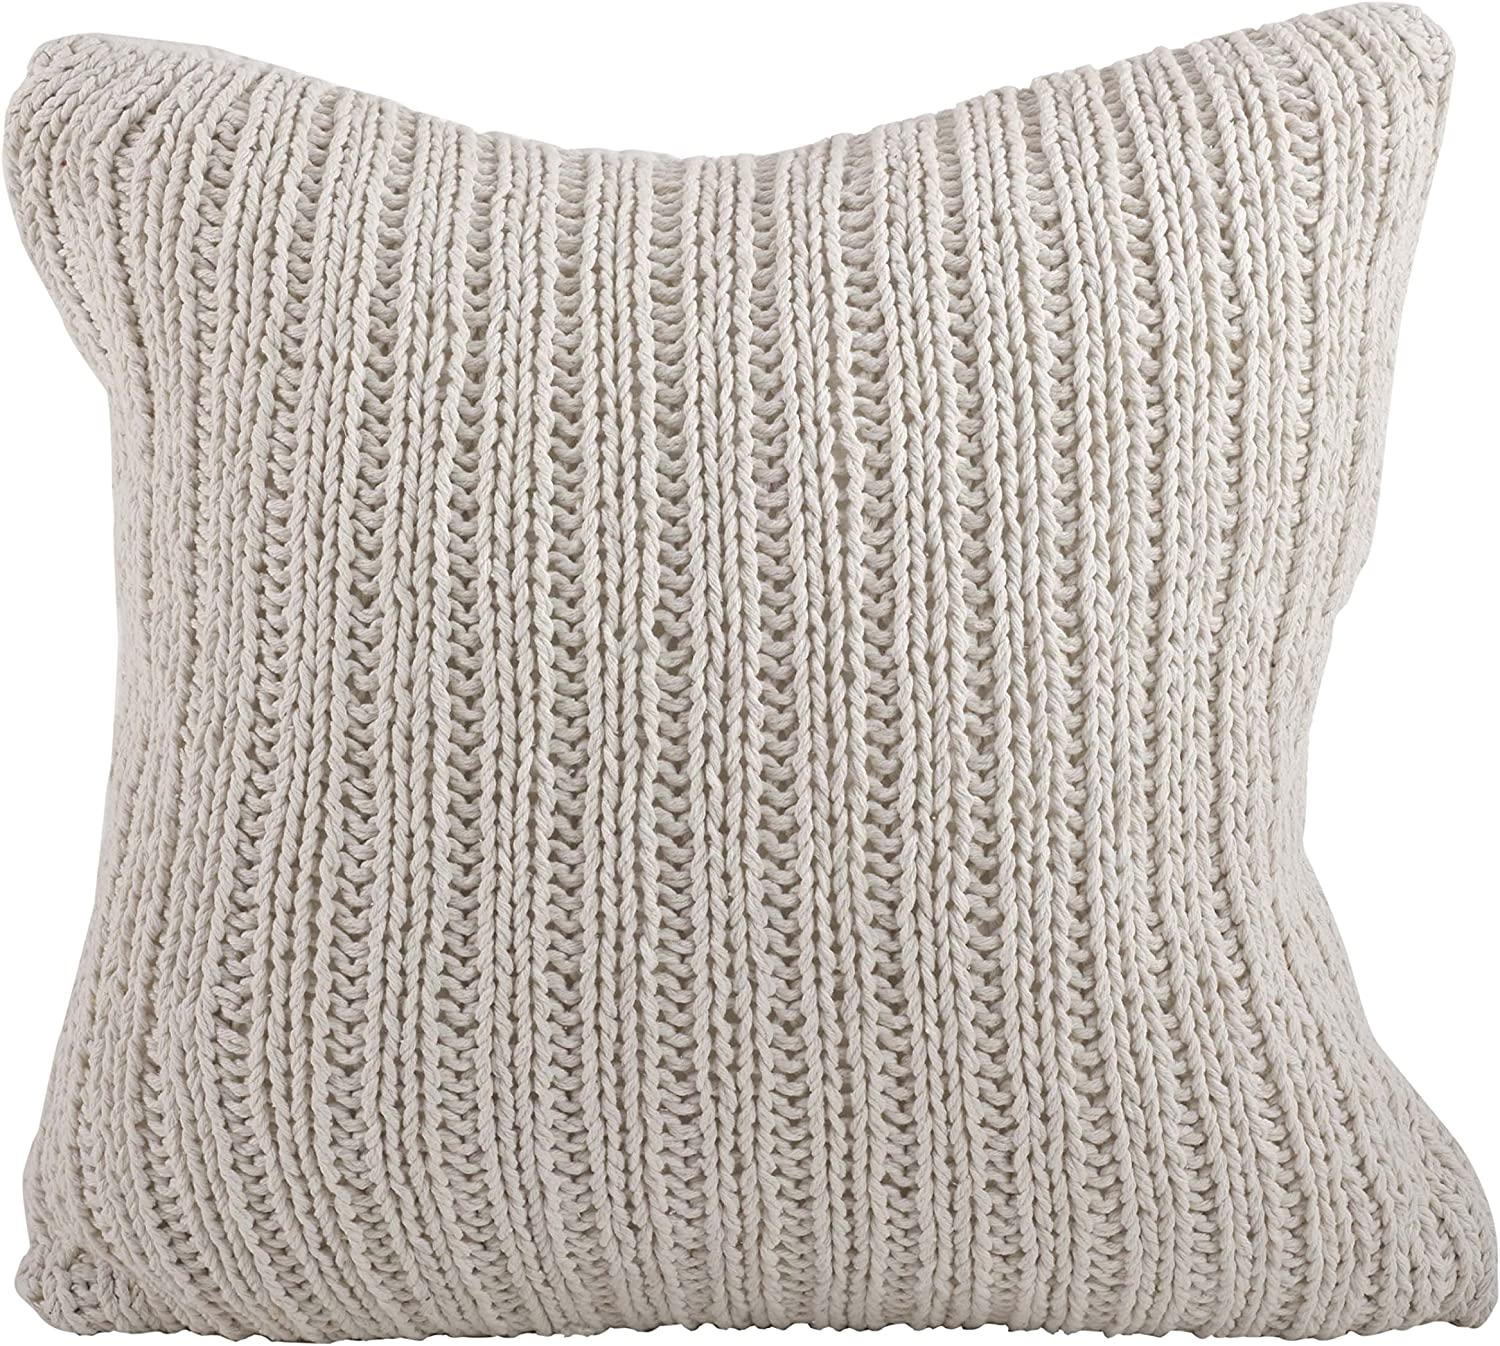 SARO LIFESTYLE 1312 Darcy Knitted Collection Cotton Knitten Design Down Filled Throw Pillow, Ivory, 20  Square,